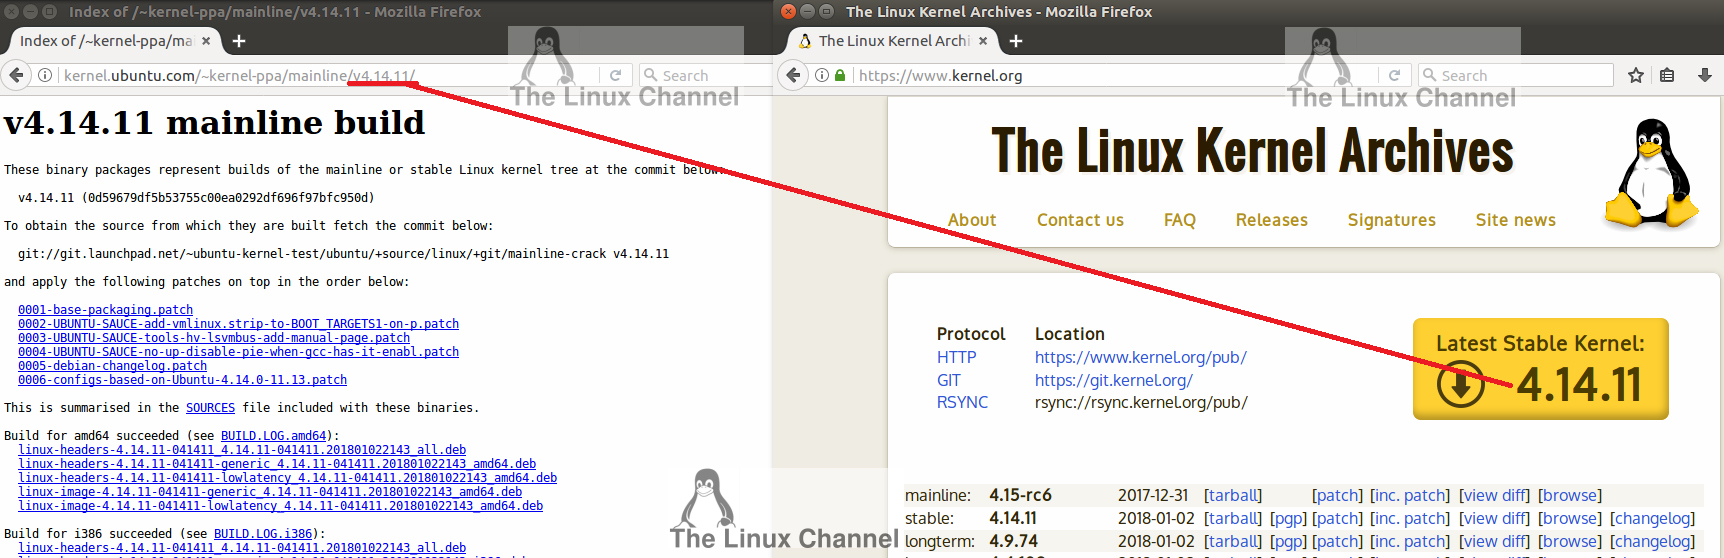 1 Linux Kernel v4.14.11 mainline build